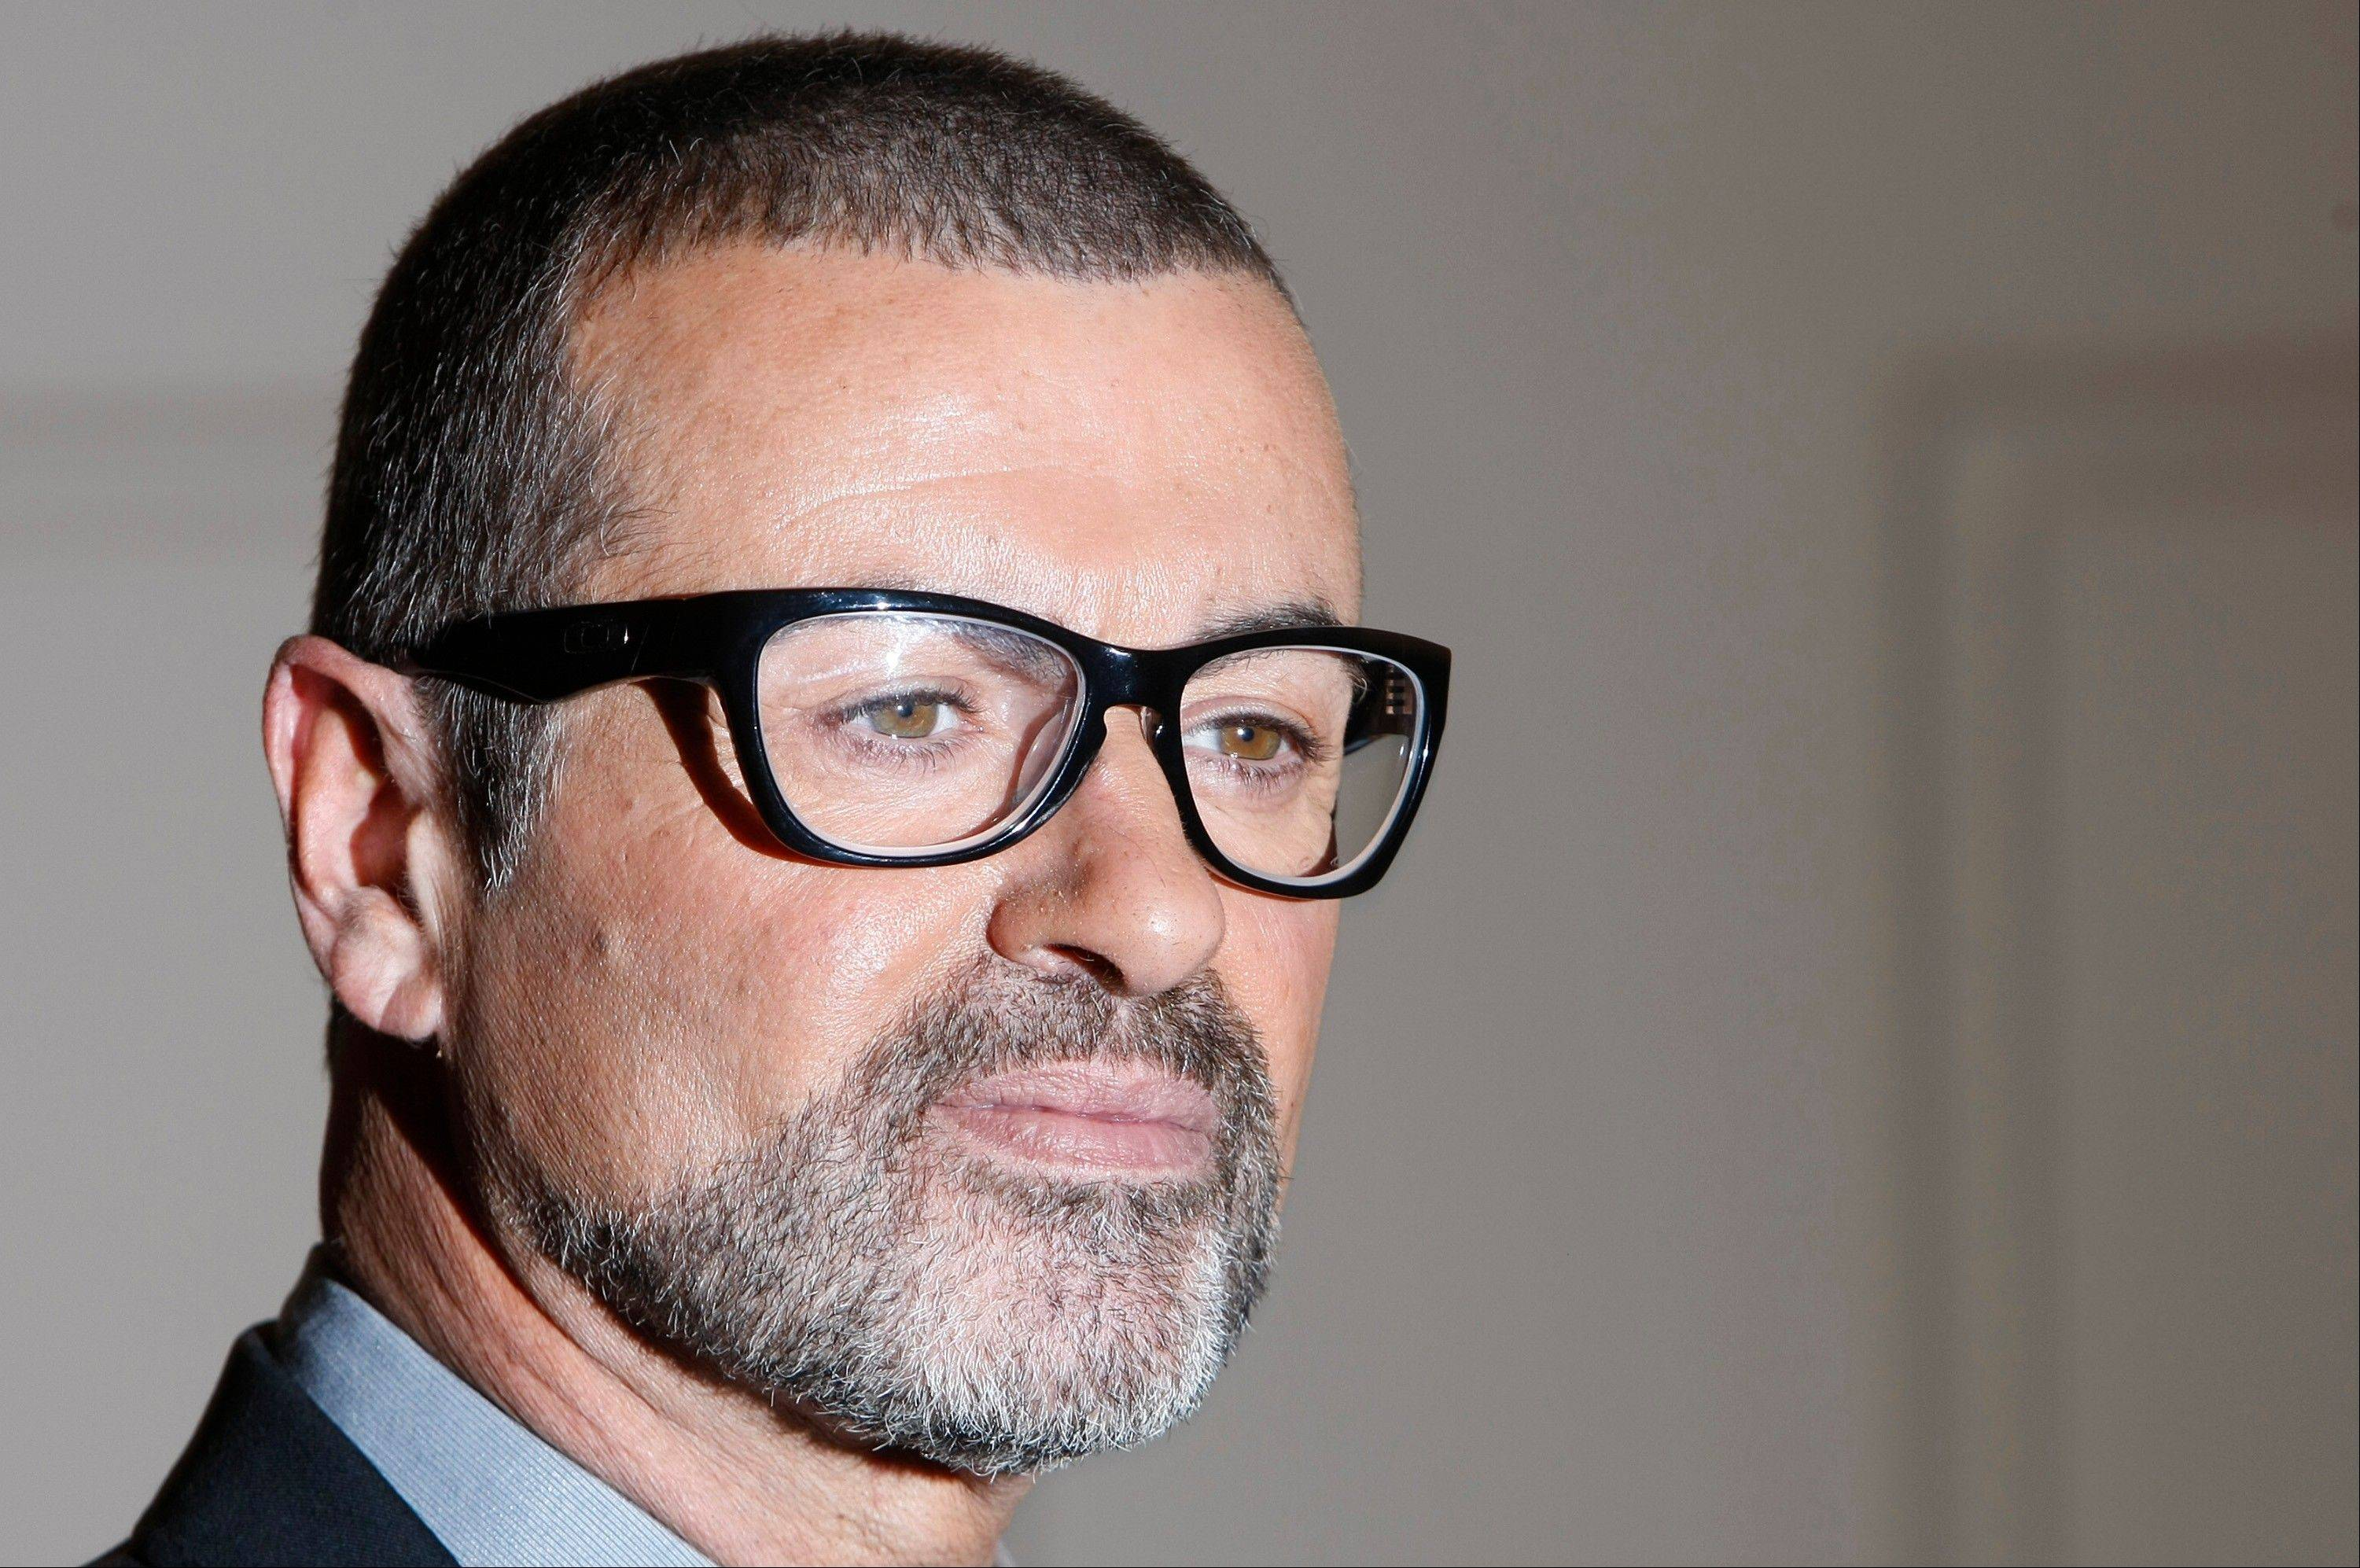 British singer George Michael has been released from a Vienna hospital after being treated for pneumonia.